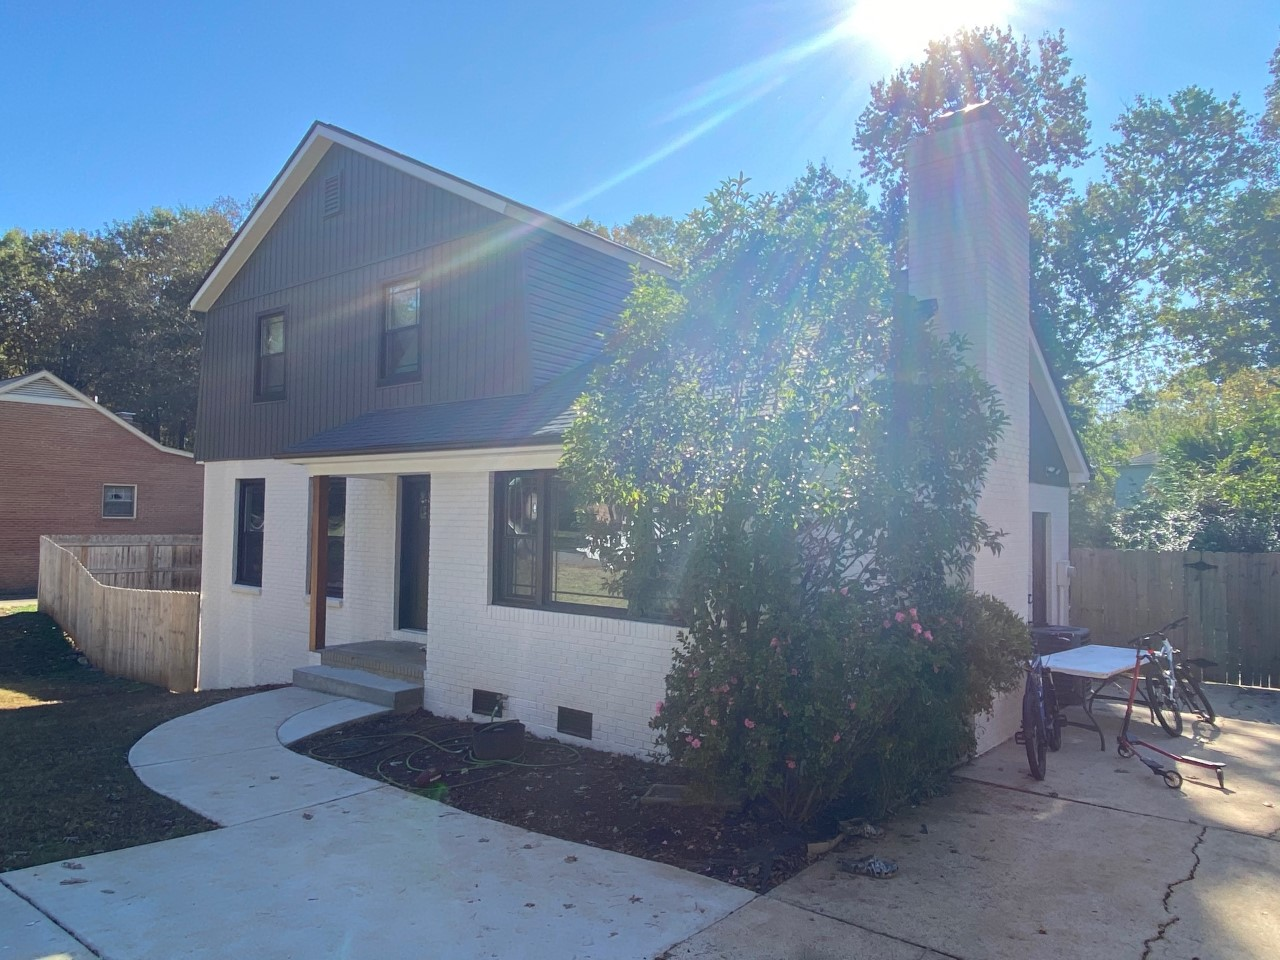 South Charlotte siding and window replacement